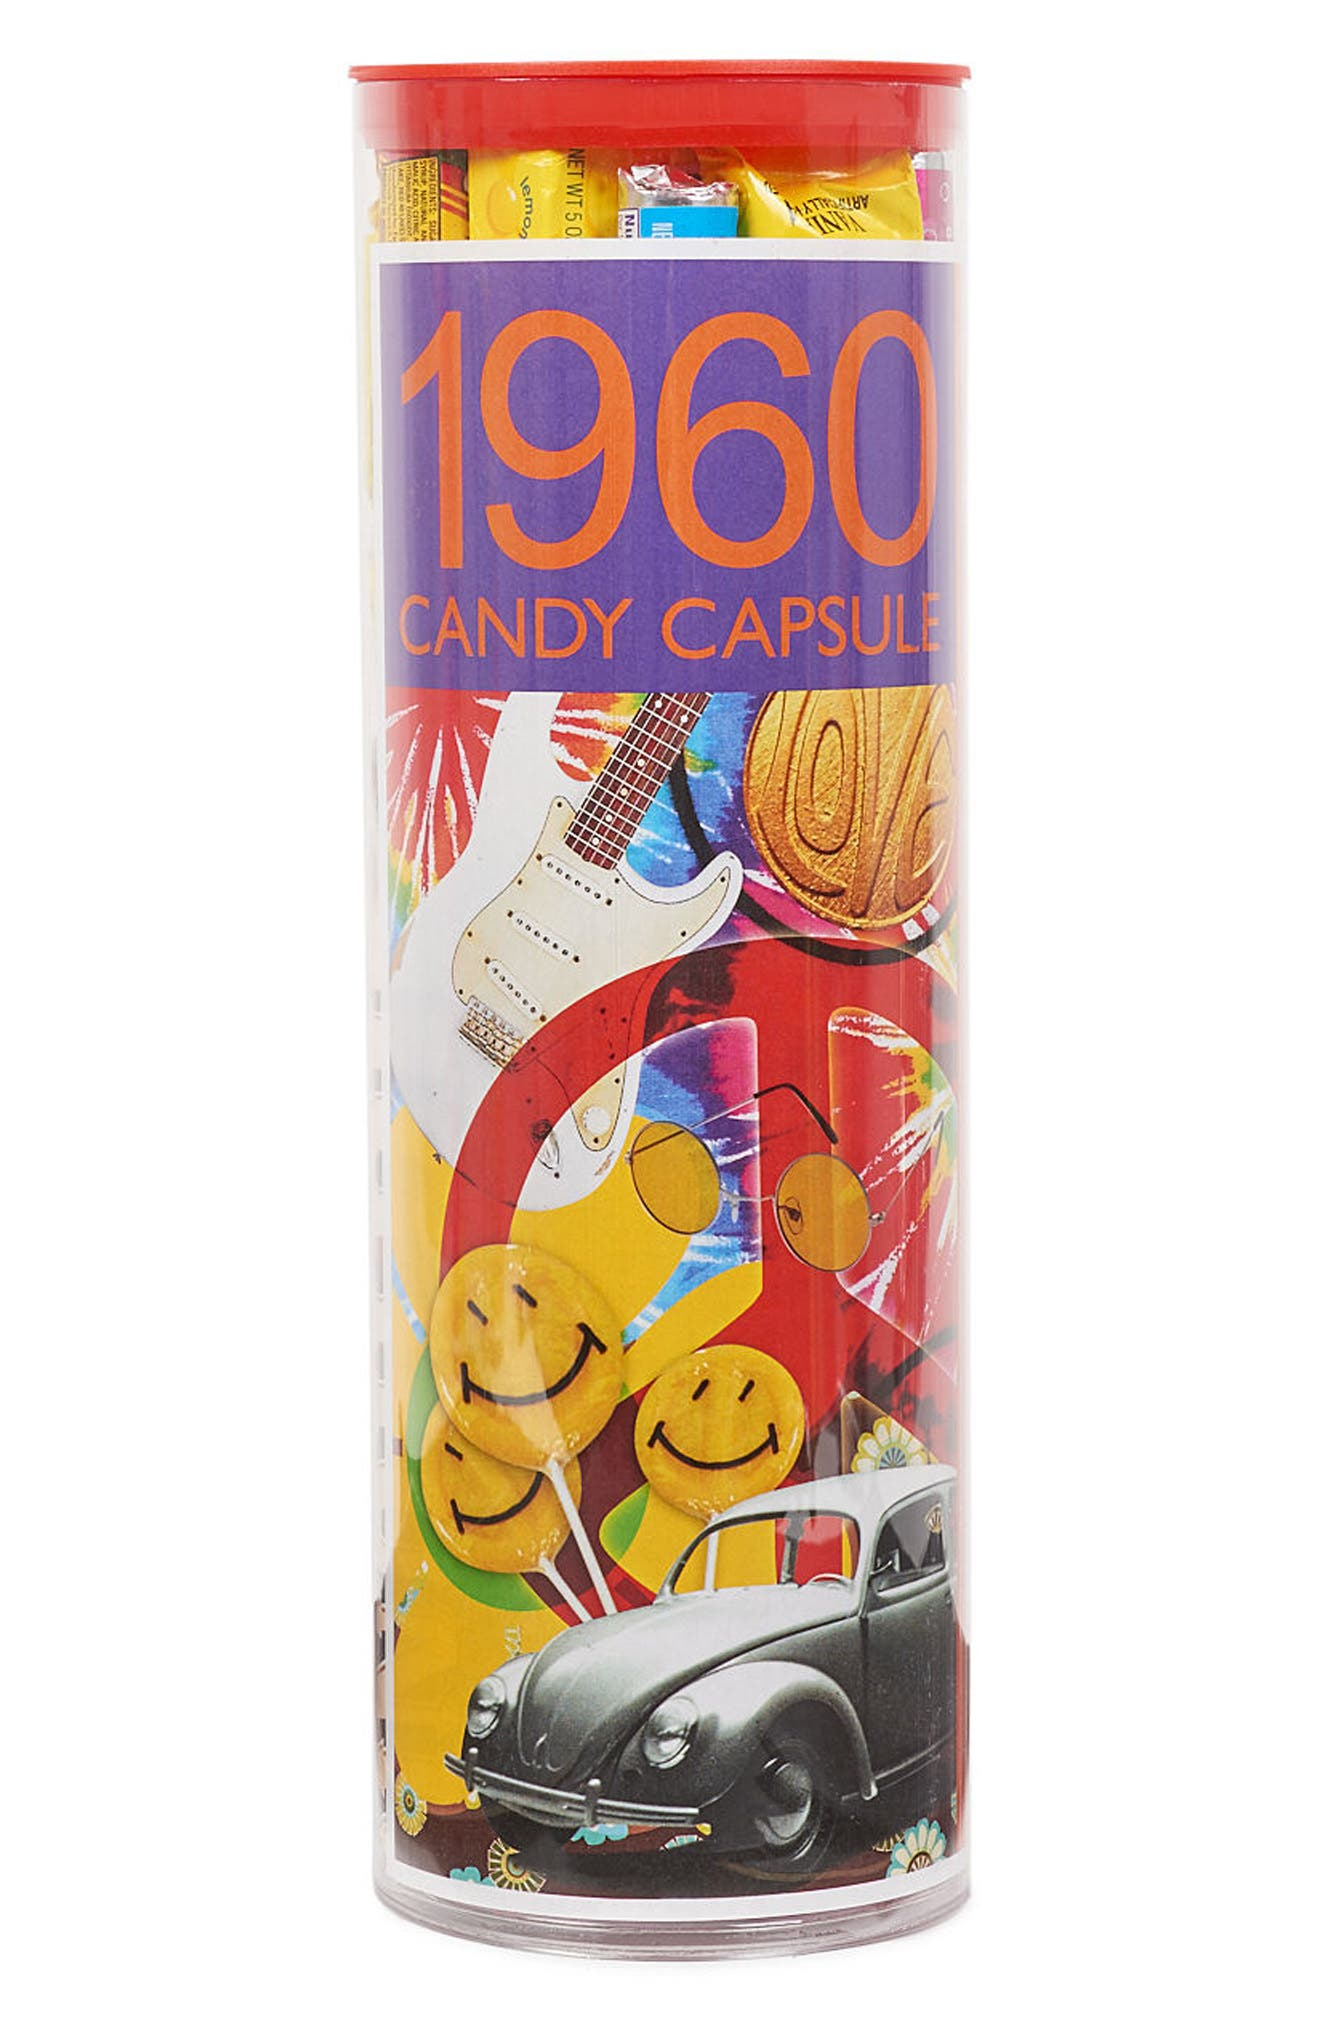 DYLAN'S CANDY BAR,                             1960s Time Capsule Gift Set,                             Main thumbnail 1, color,                             PURPLE